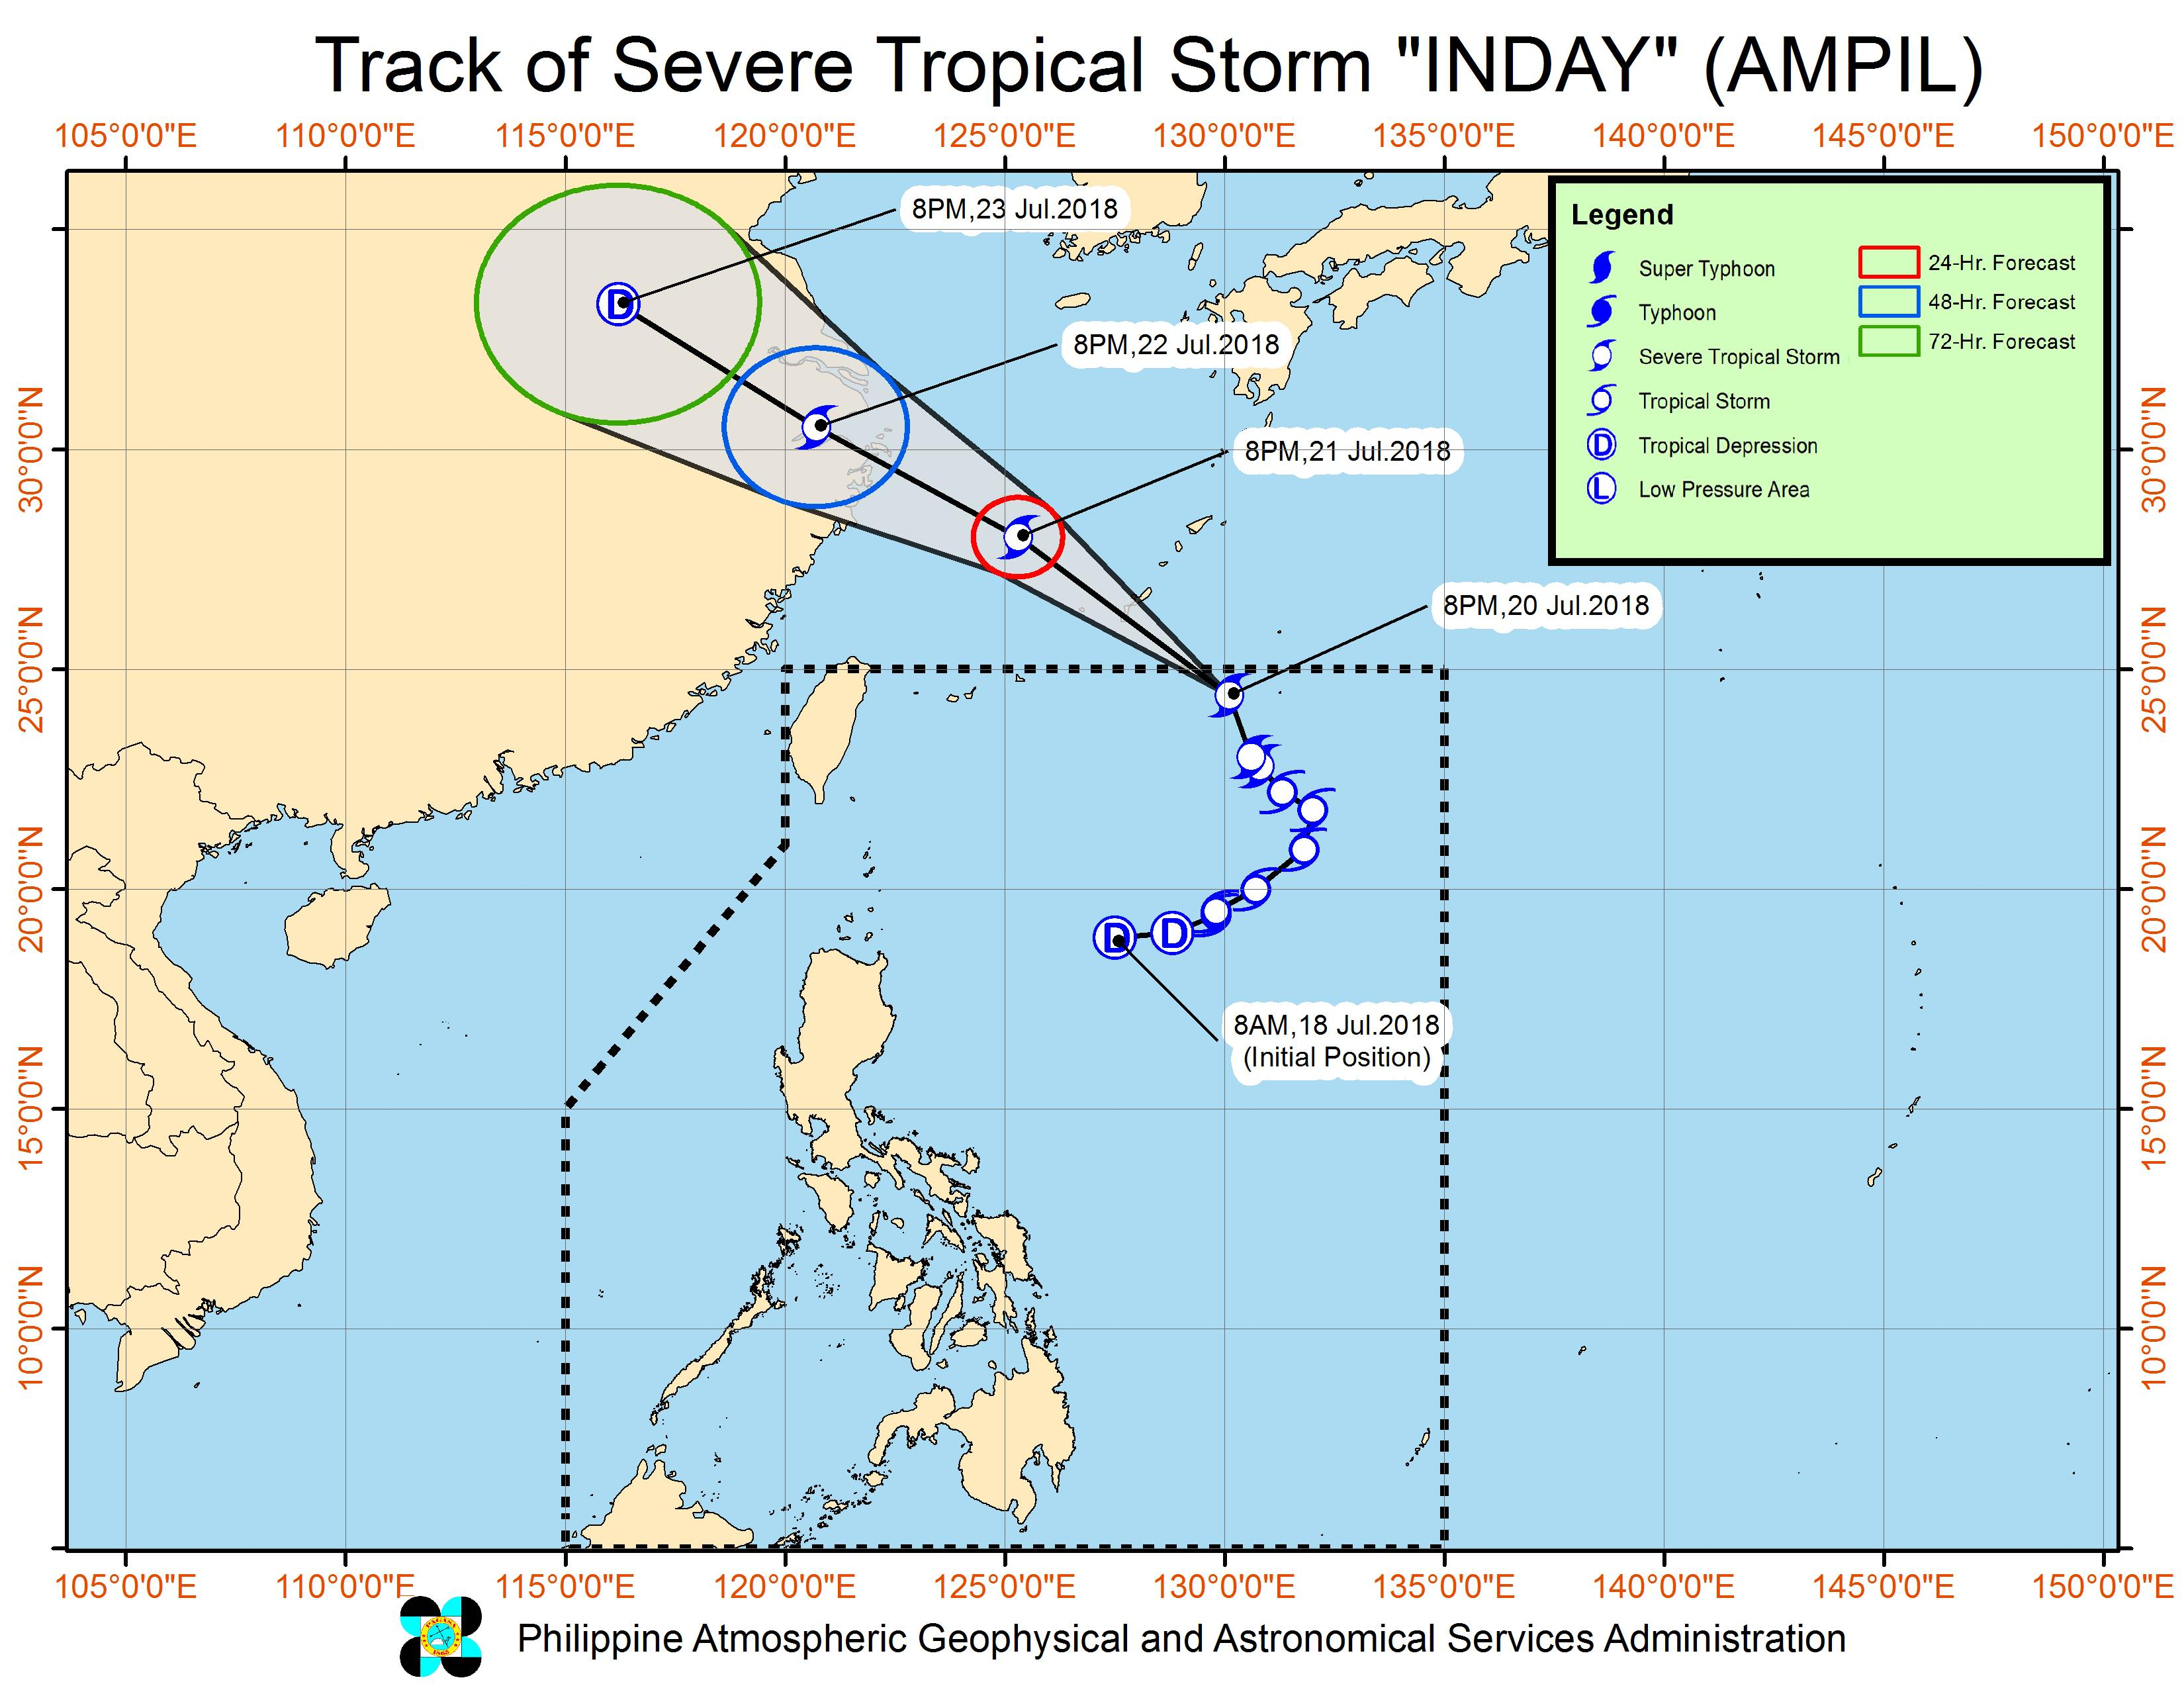 Forecast track of Severe Tropical Storm Inday (Ampil) as of July 20, 2018, 11 pm. Image courtesy of PAGASA